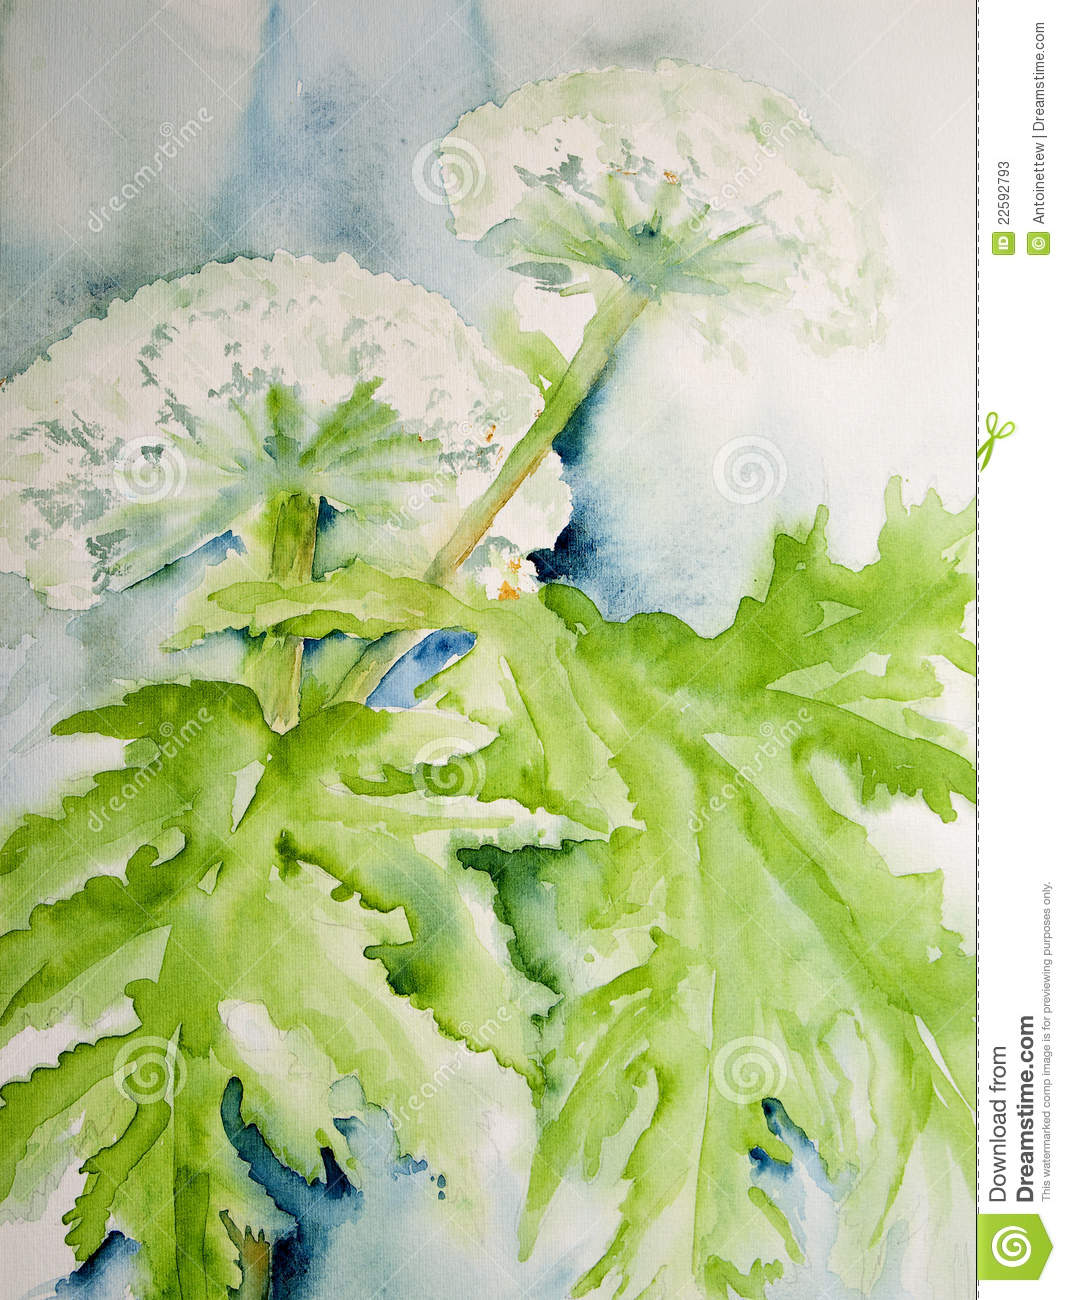 Modern watercolor painting of the Giant Hog weed